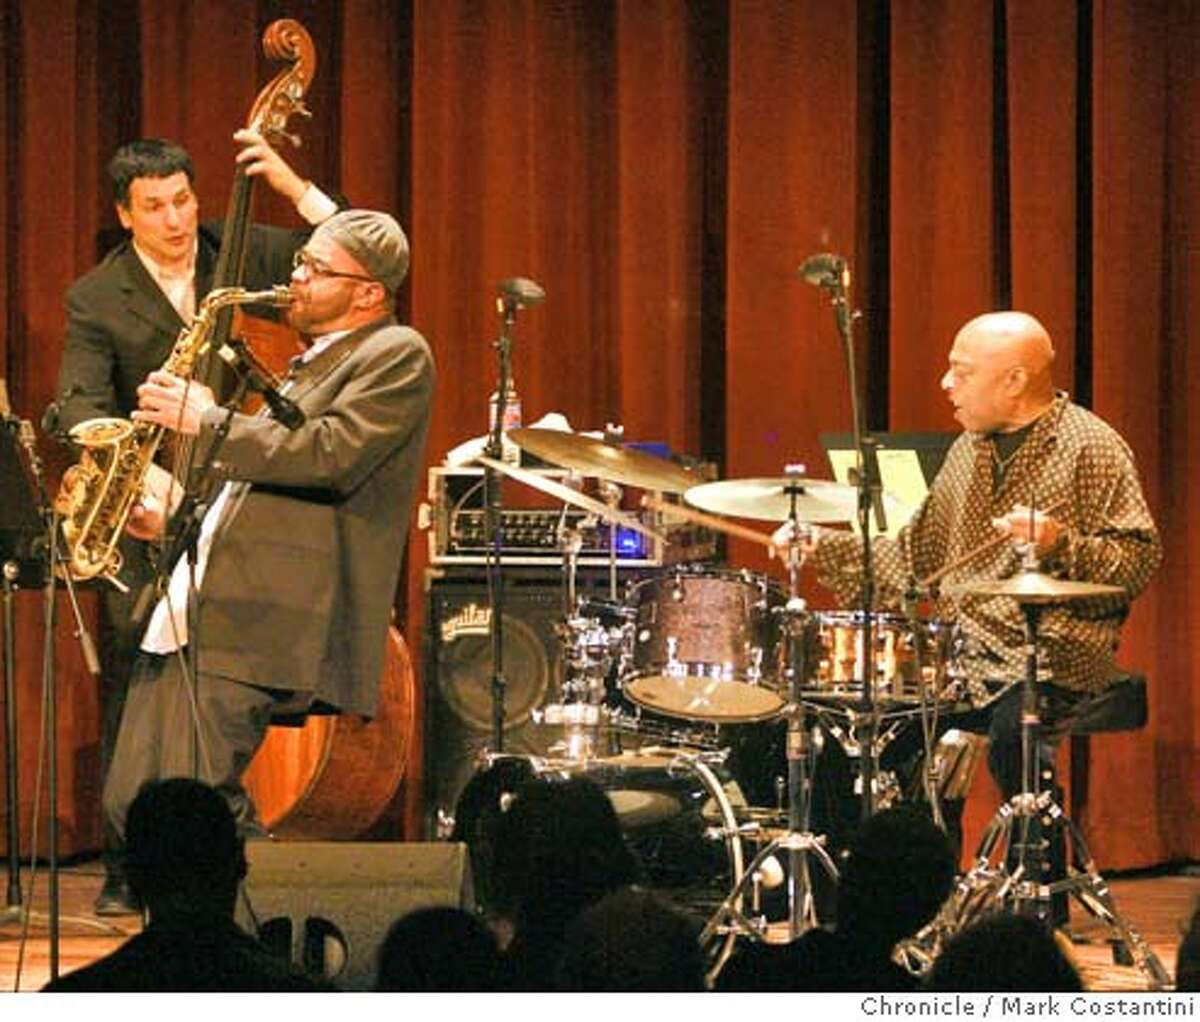 (from left) John Pattitucci, Kenny Garrett and Roy Haynes. Opening night of Yoshi's, a big new jazz club in San Francisco. All-star band of drummer Roy Haynes inaugurates it. Mark Costantini / The Chronicle Photo taken on 11/28/07, in San Francisco, CA, USA